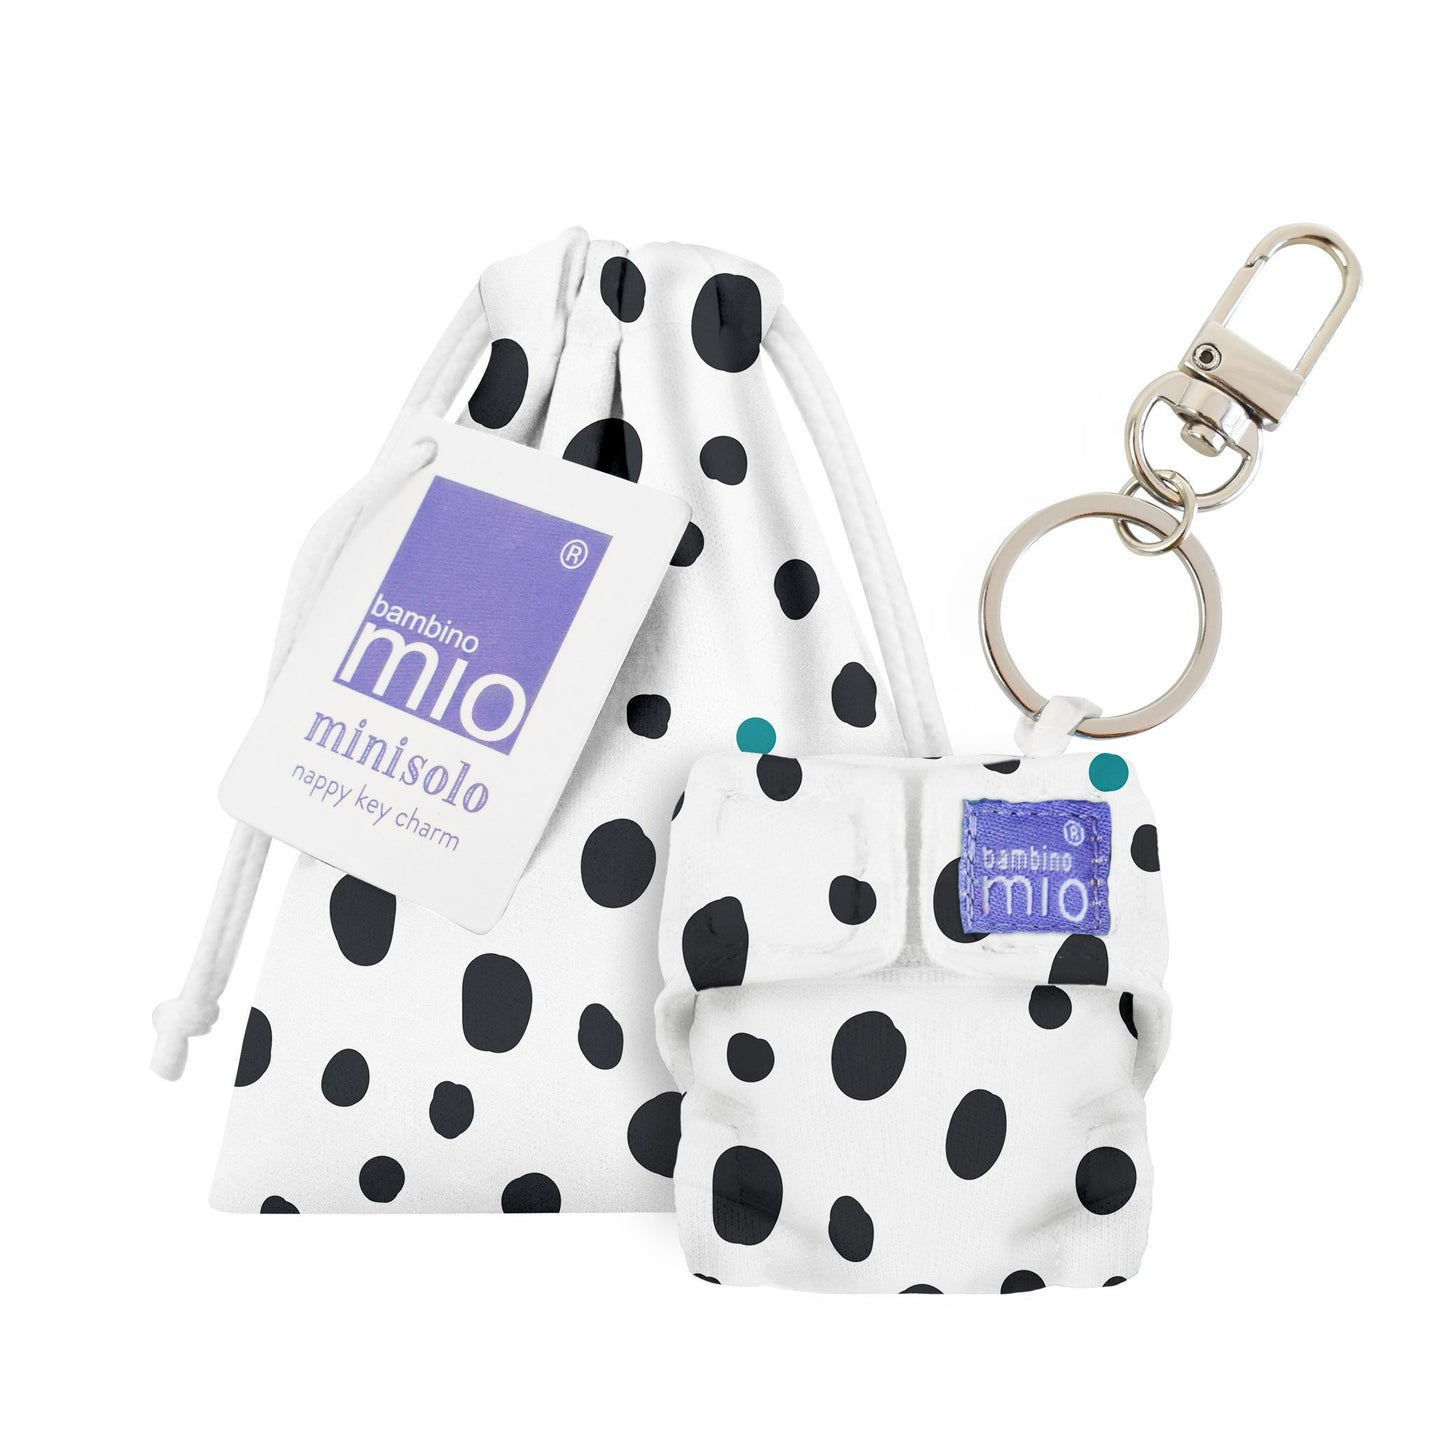 minisolo (diaper key chain)